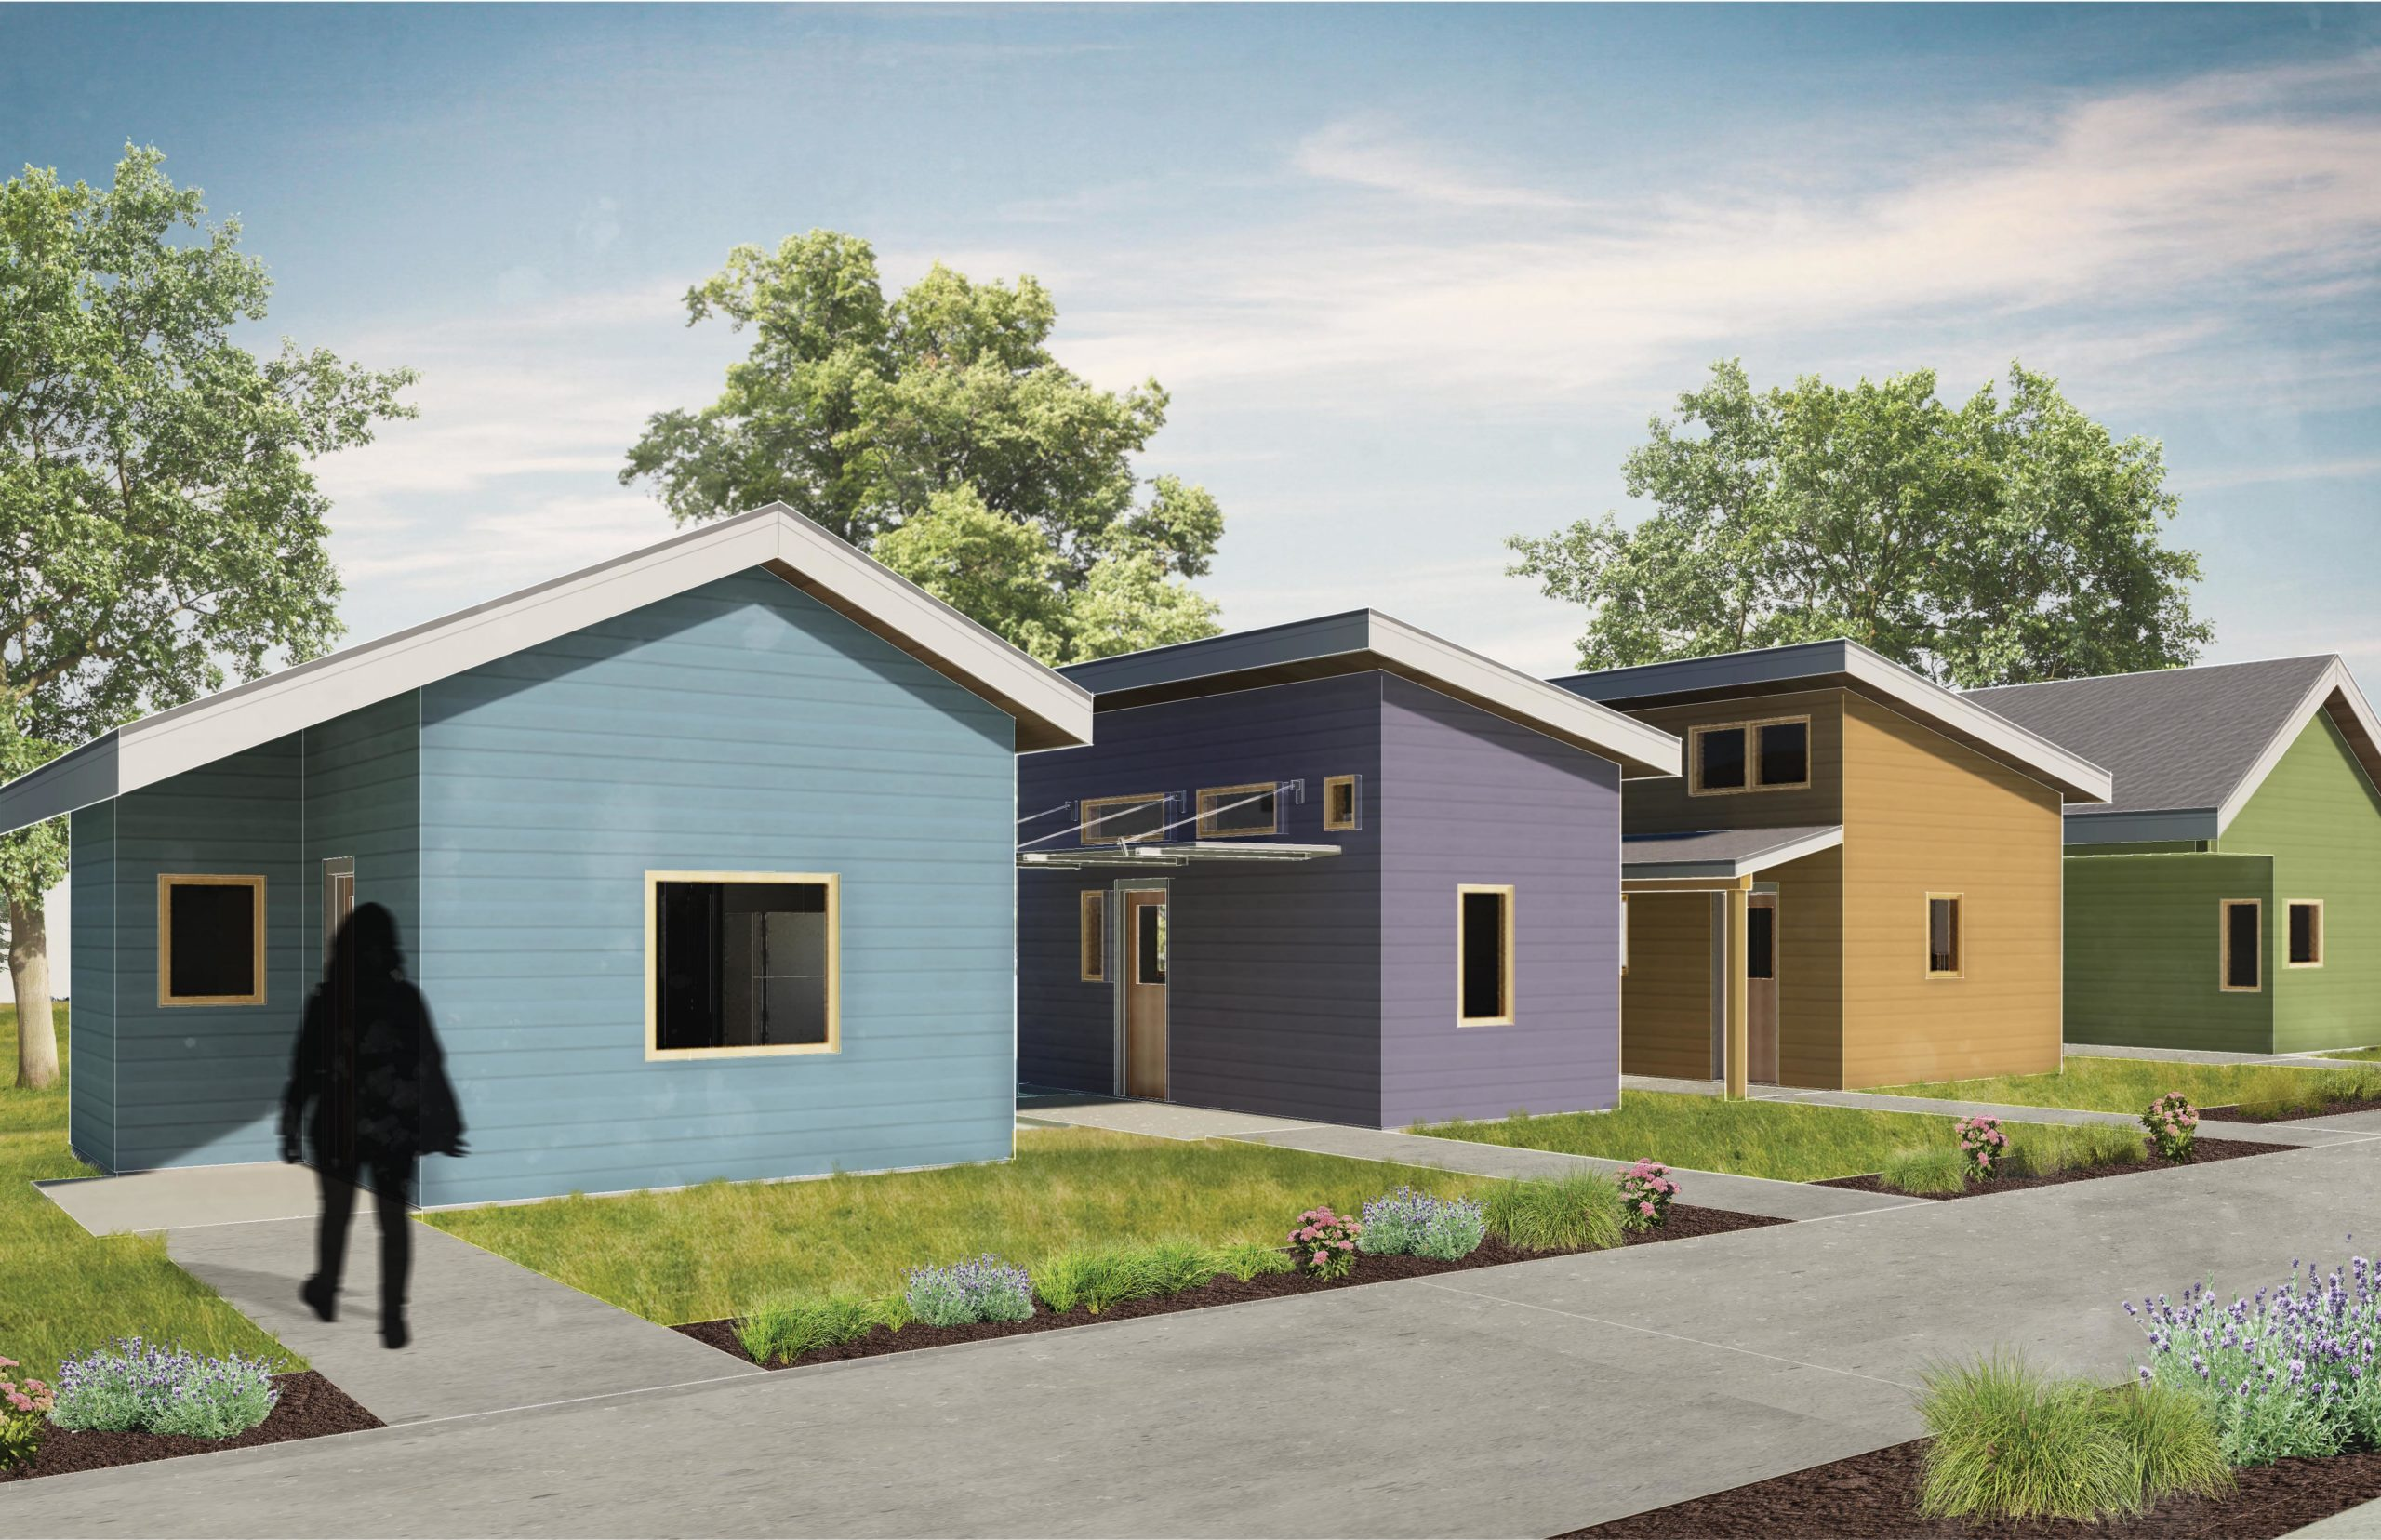 HRDC Housing first village tiny home sketch